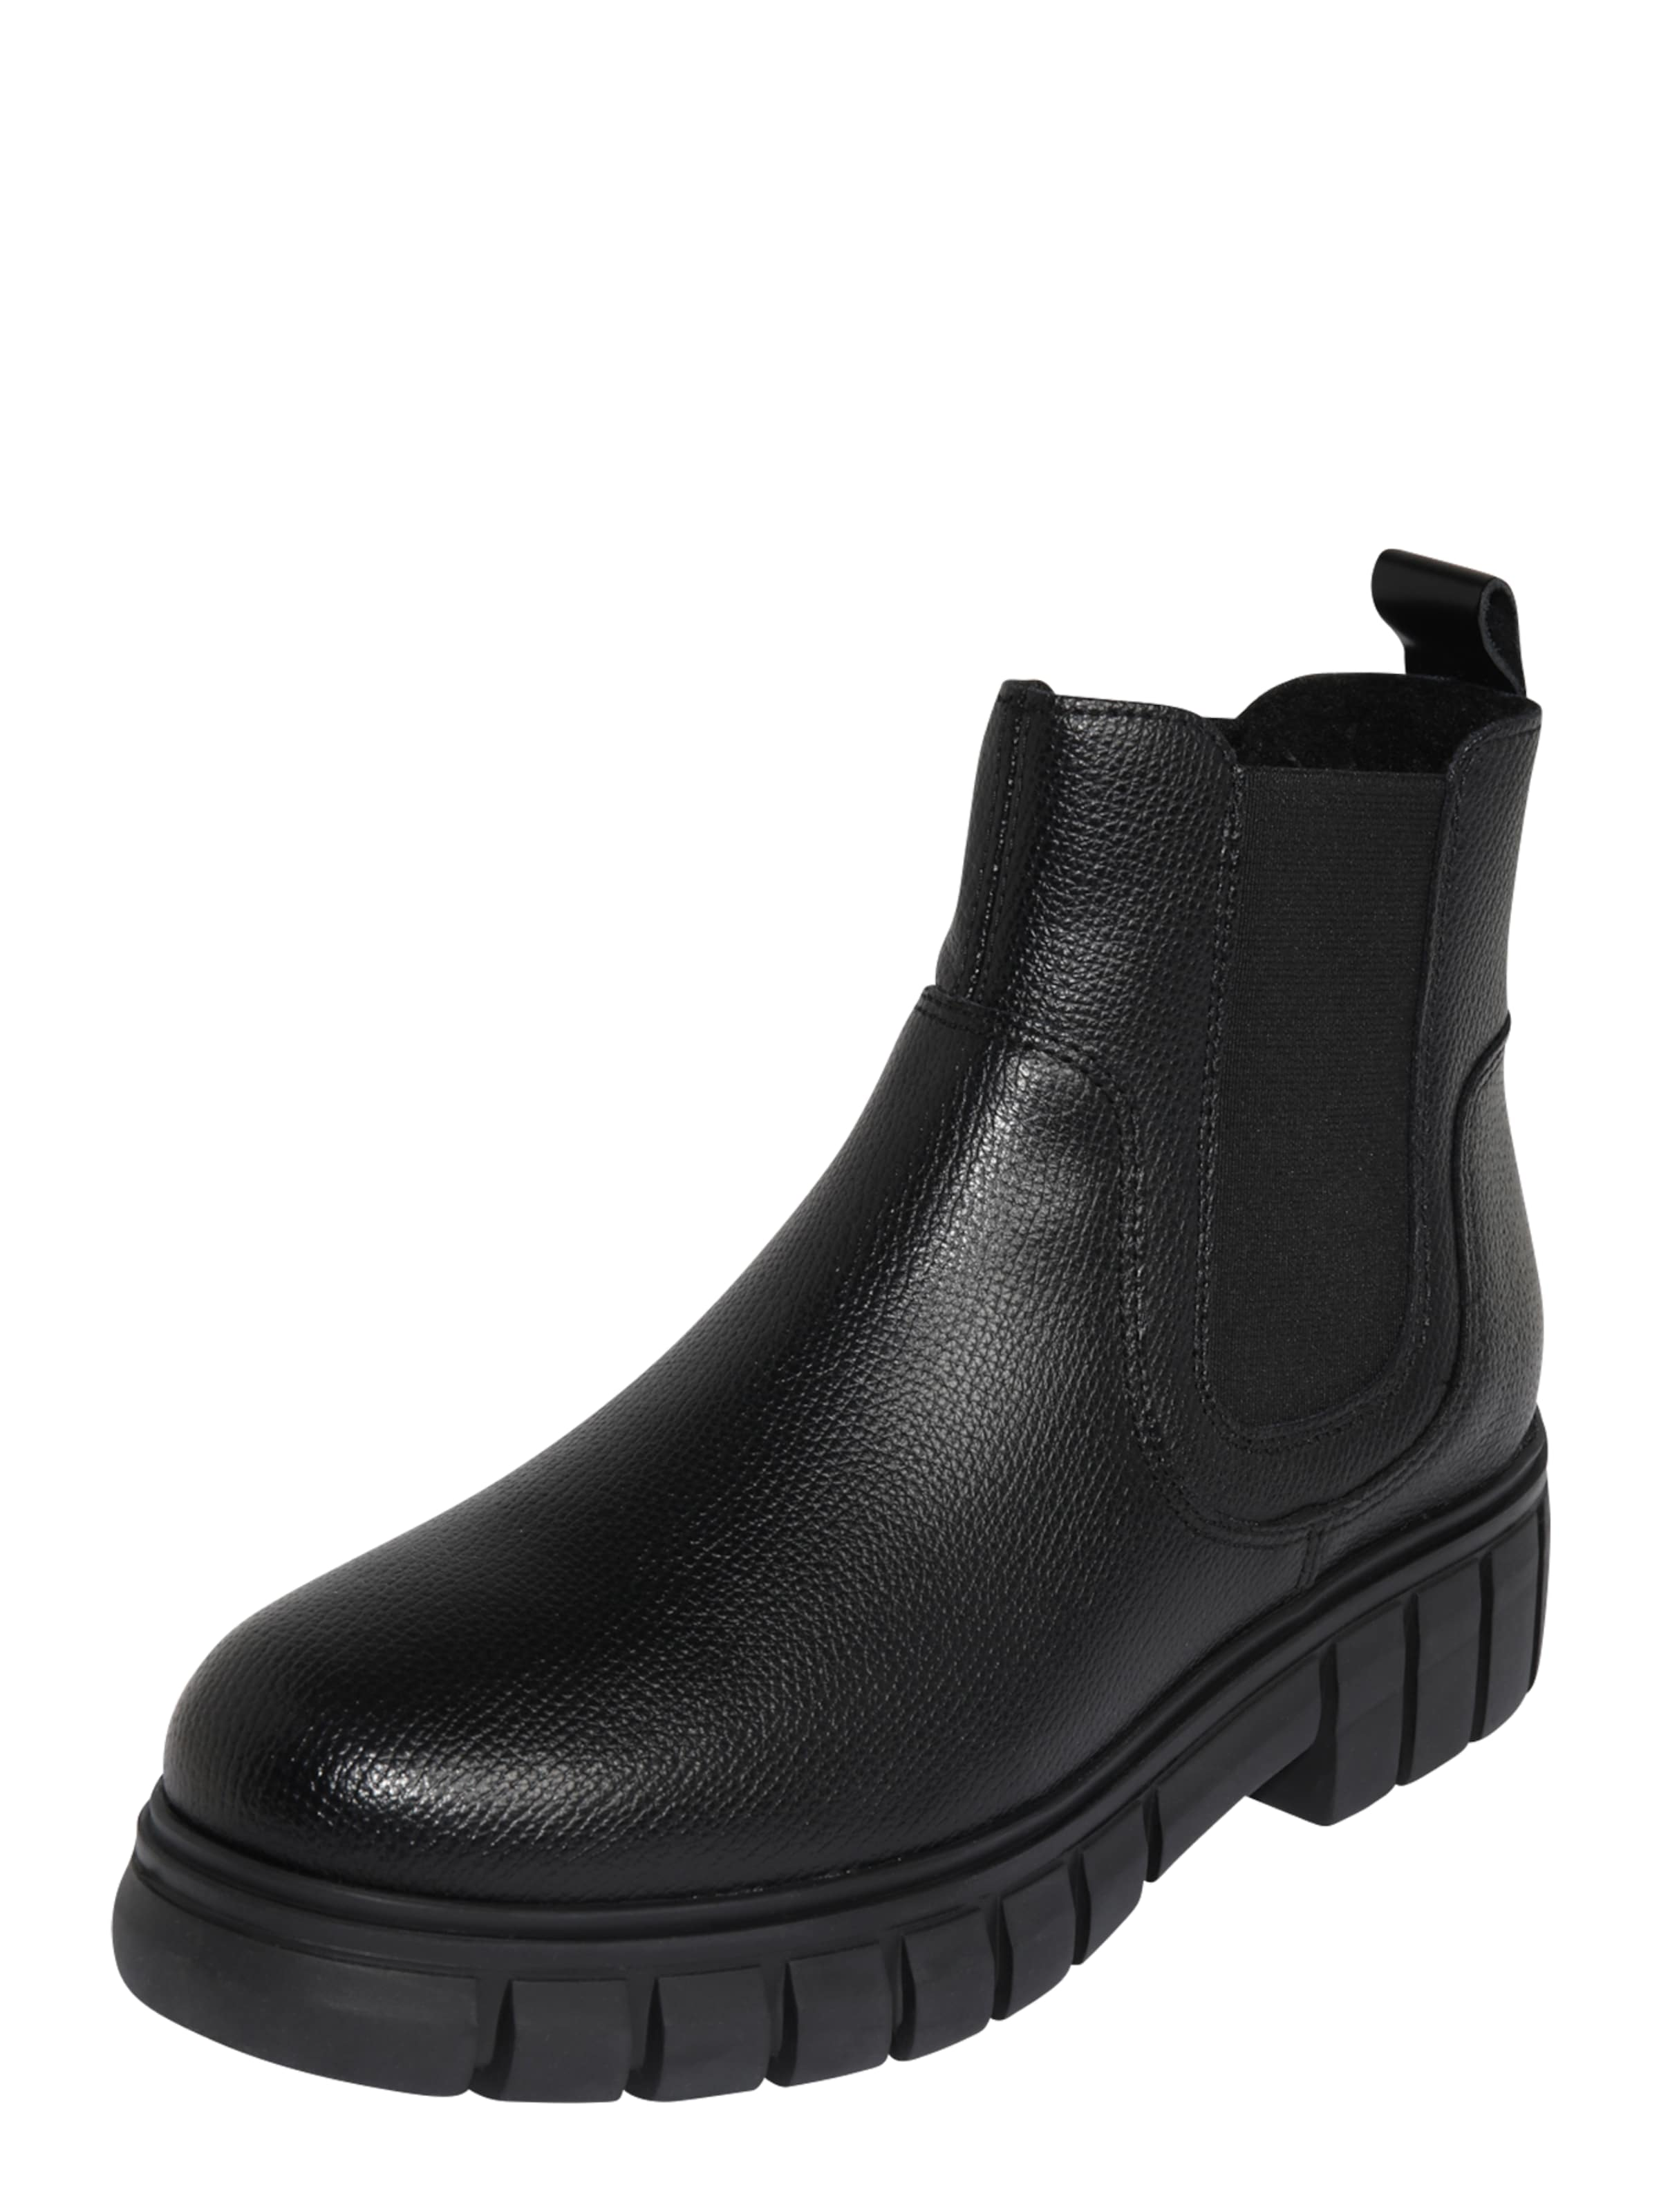 Shoe The Bear Chelsea boots 'REBEL' i svart